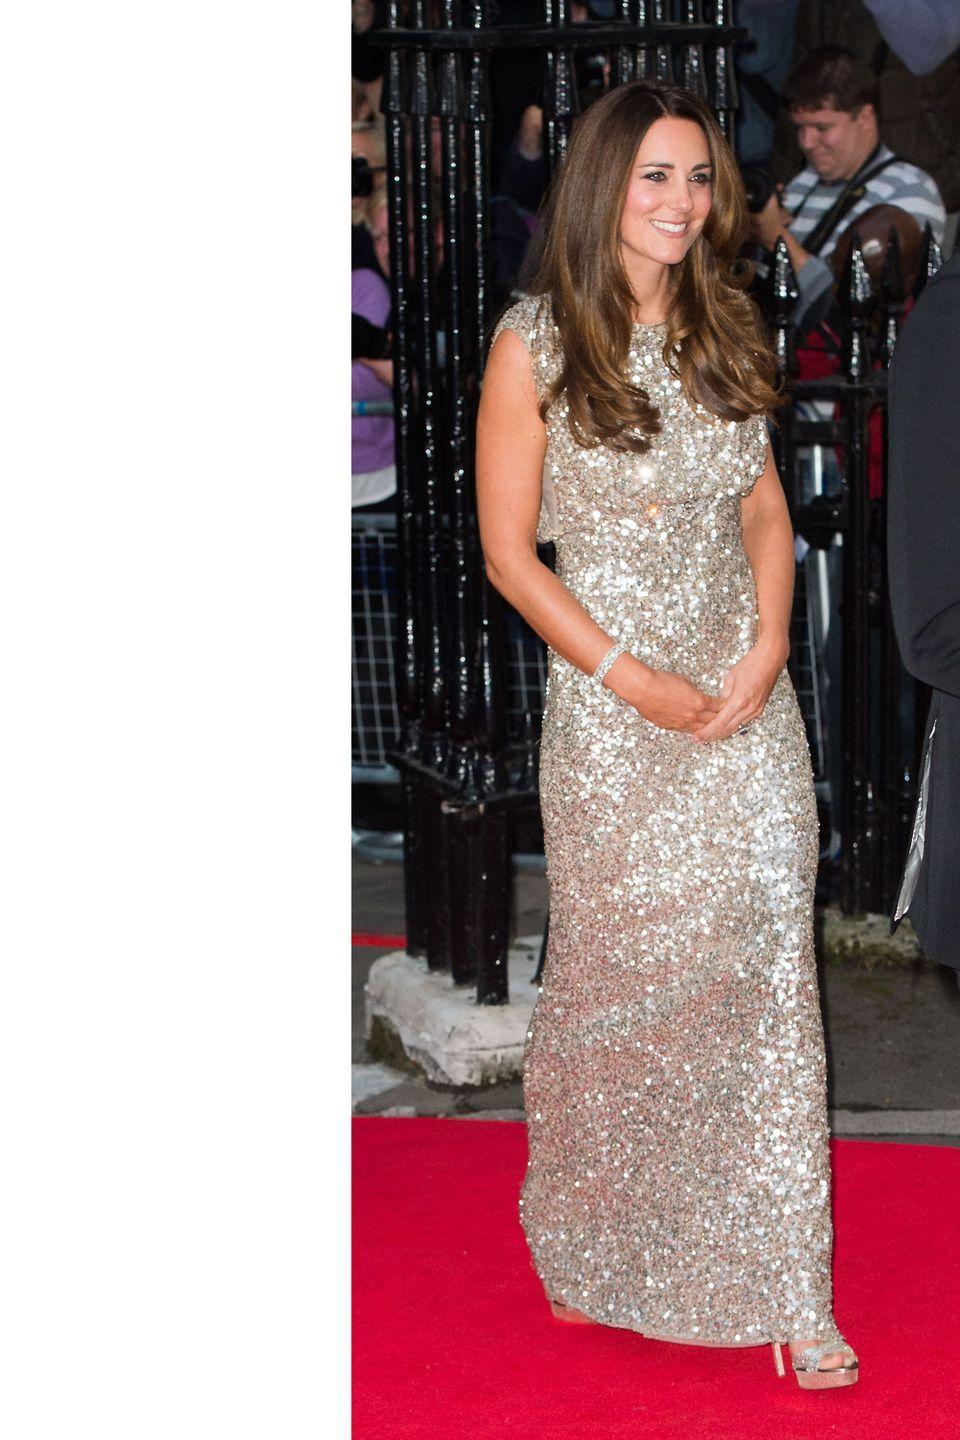 <p>Shining in Jenny Packham at the Tusk Conservation Awards at The Royal Society in London</p>